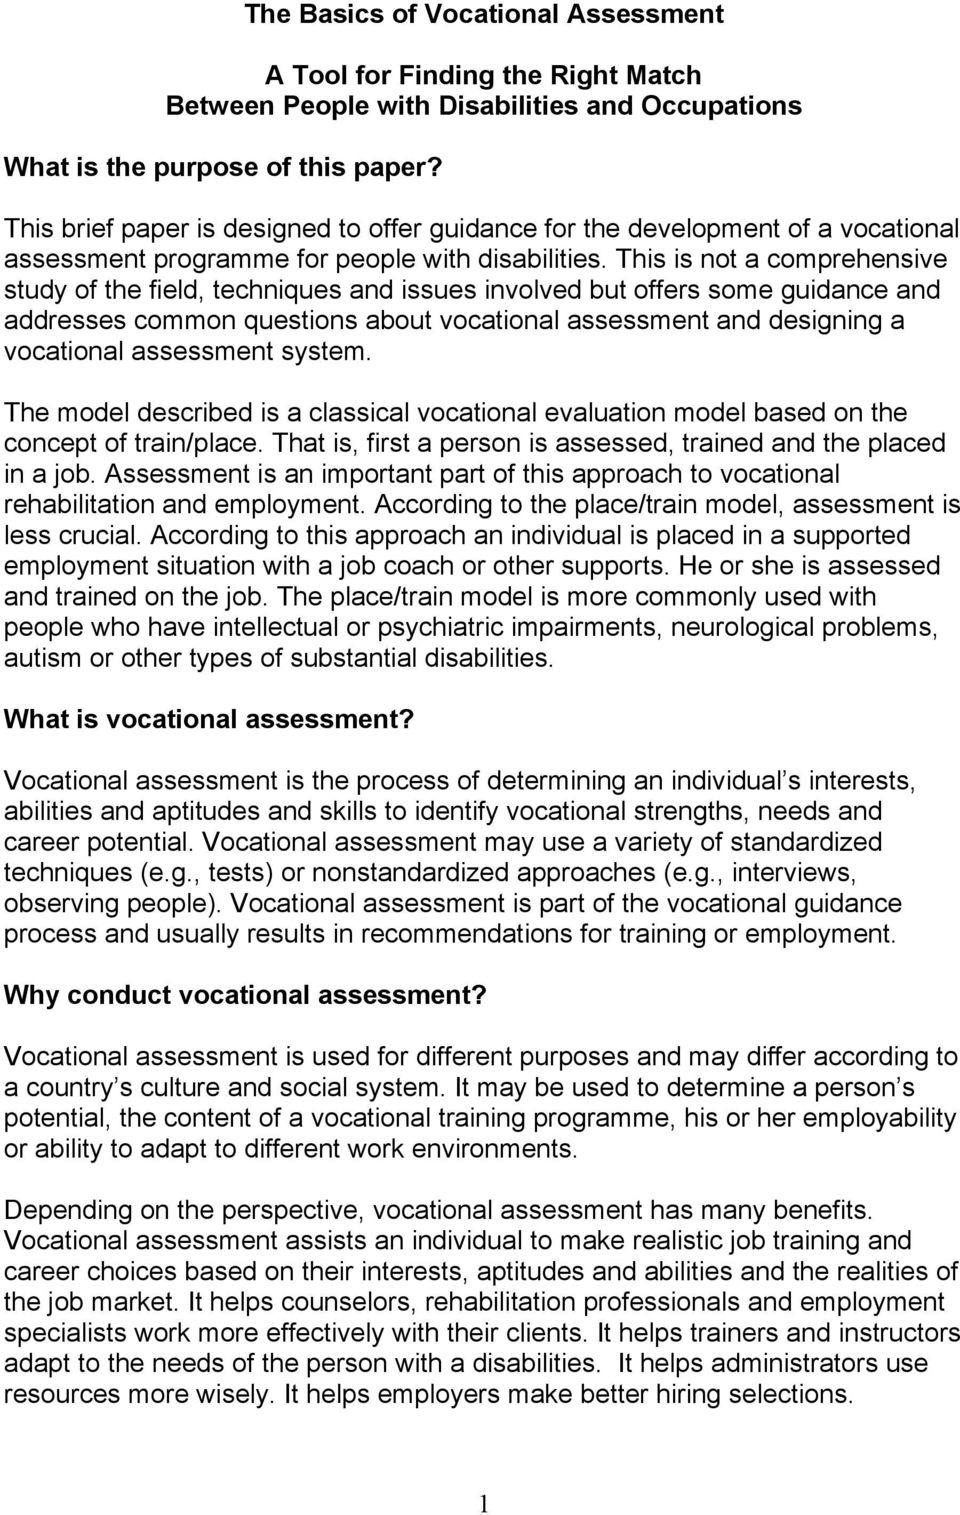 This is not a comprehensive study of the field, techniques and issues involved but offers some guidance and addresses common questions about vocational assessment and designing a vocational